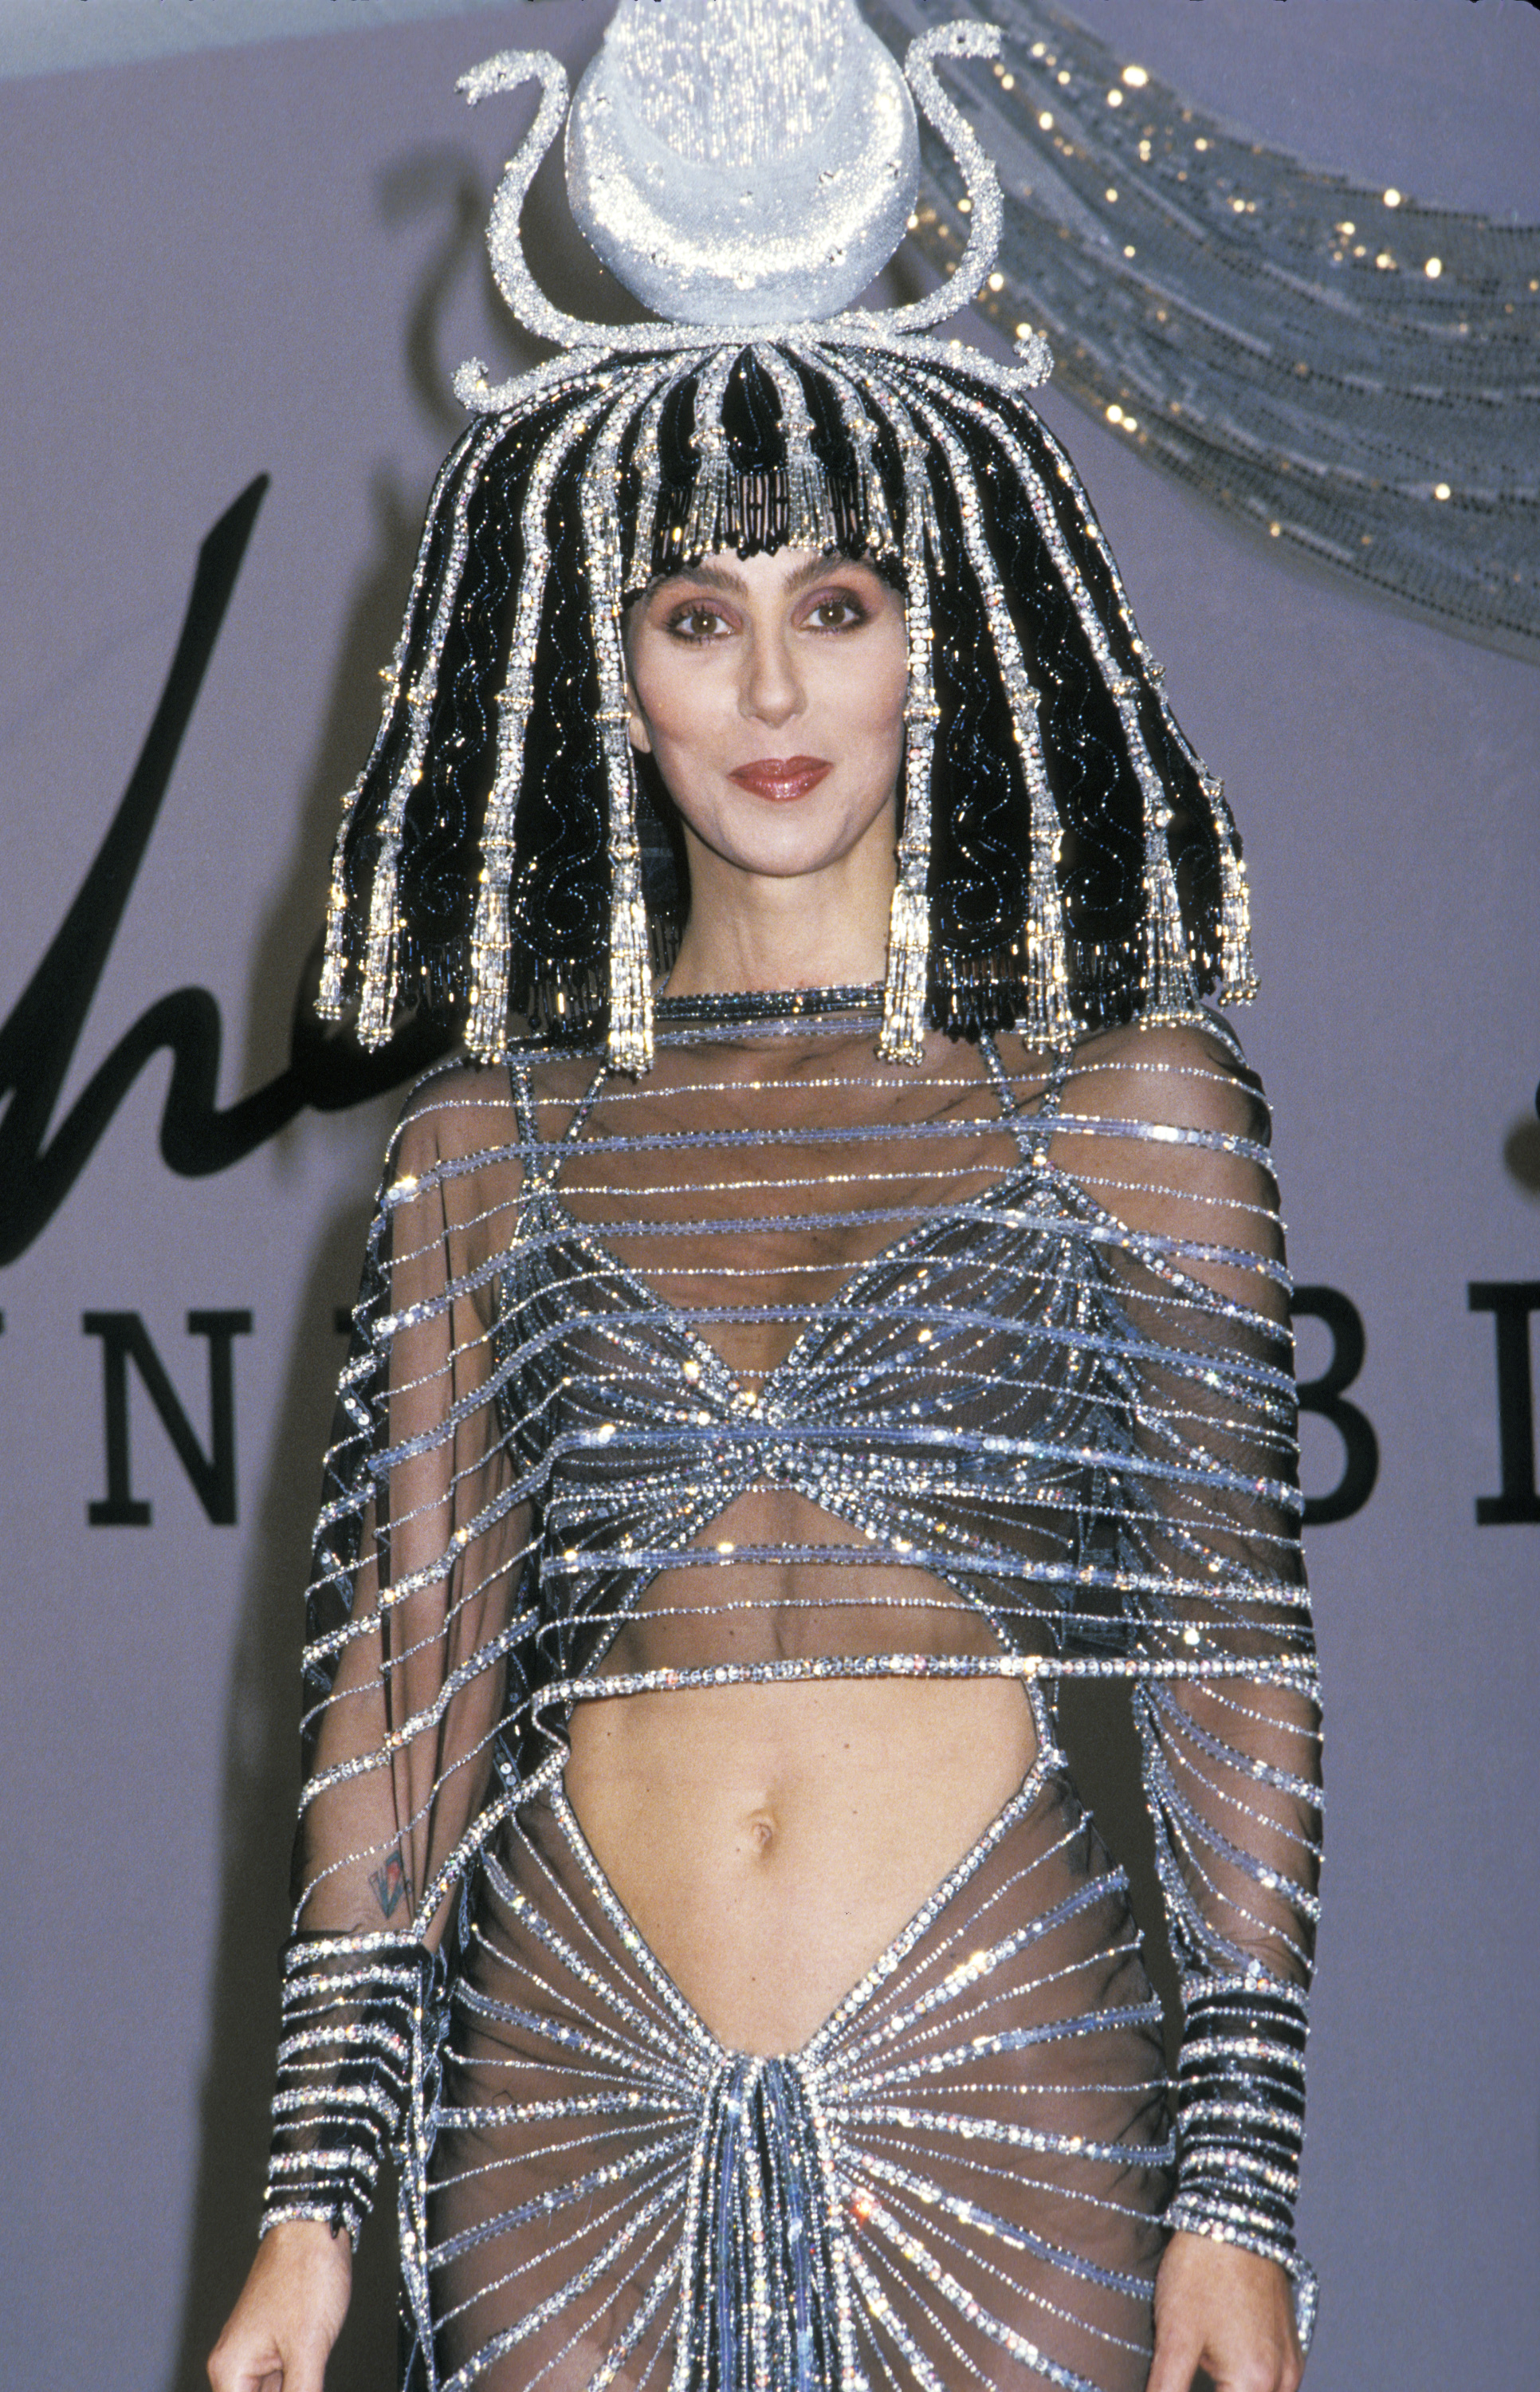 Cher at Bob Mackie's 1988 Halloween Party in Century City, Calif. on Oct. 31, 1988.